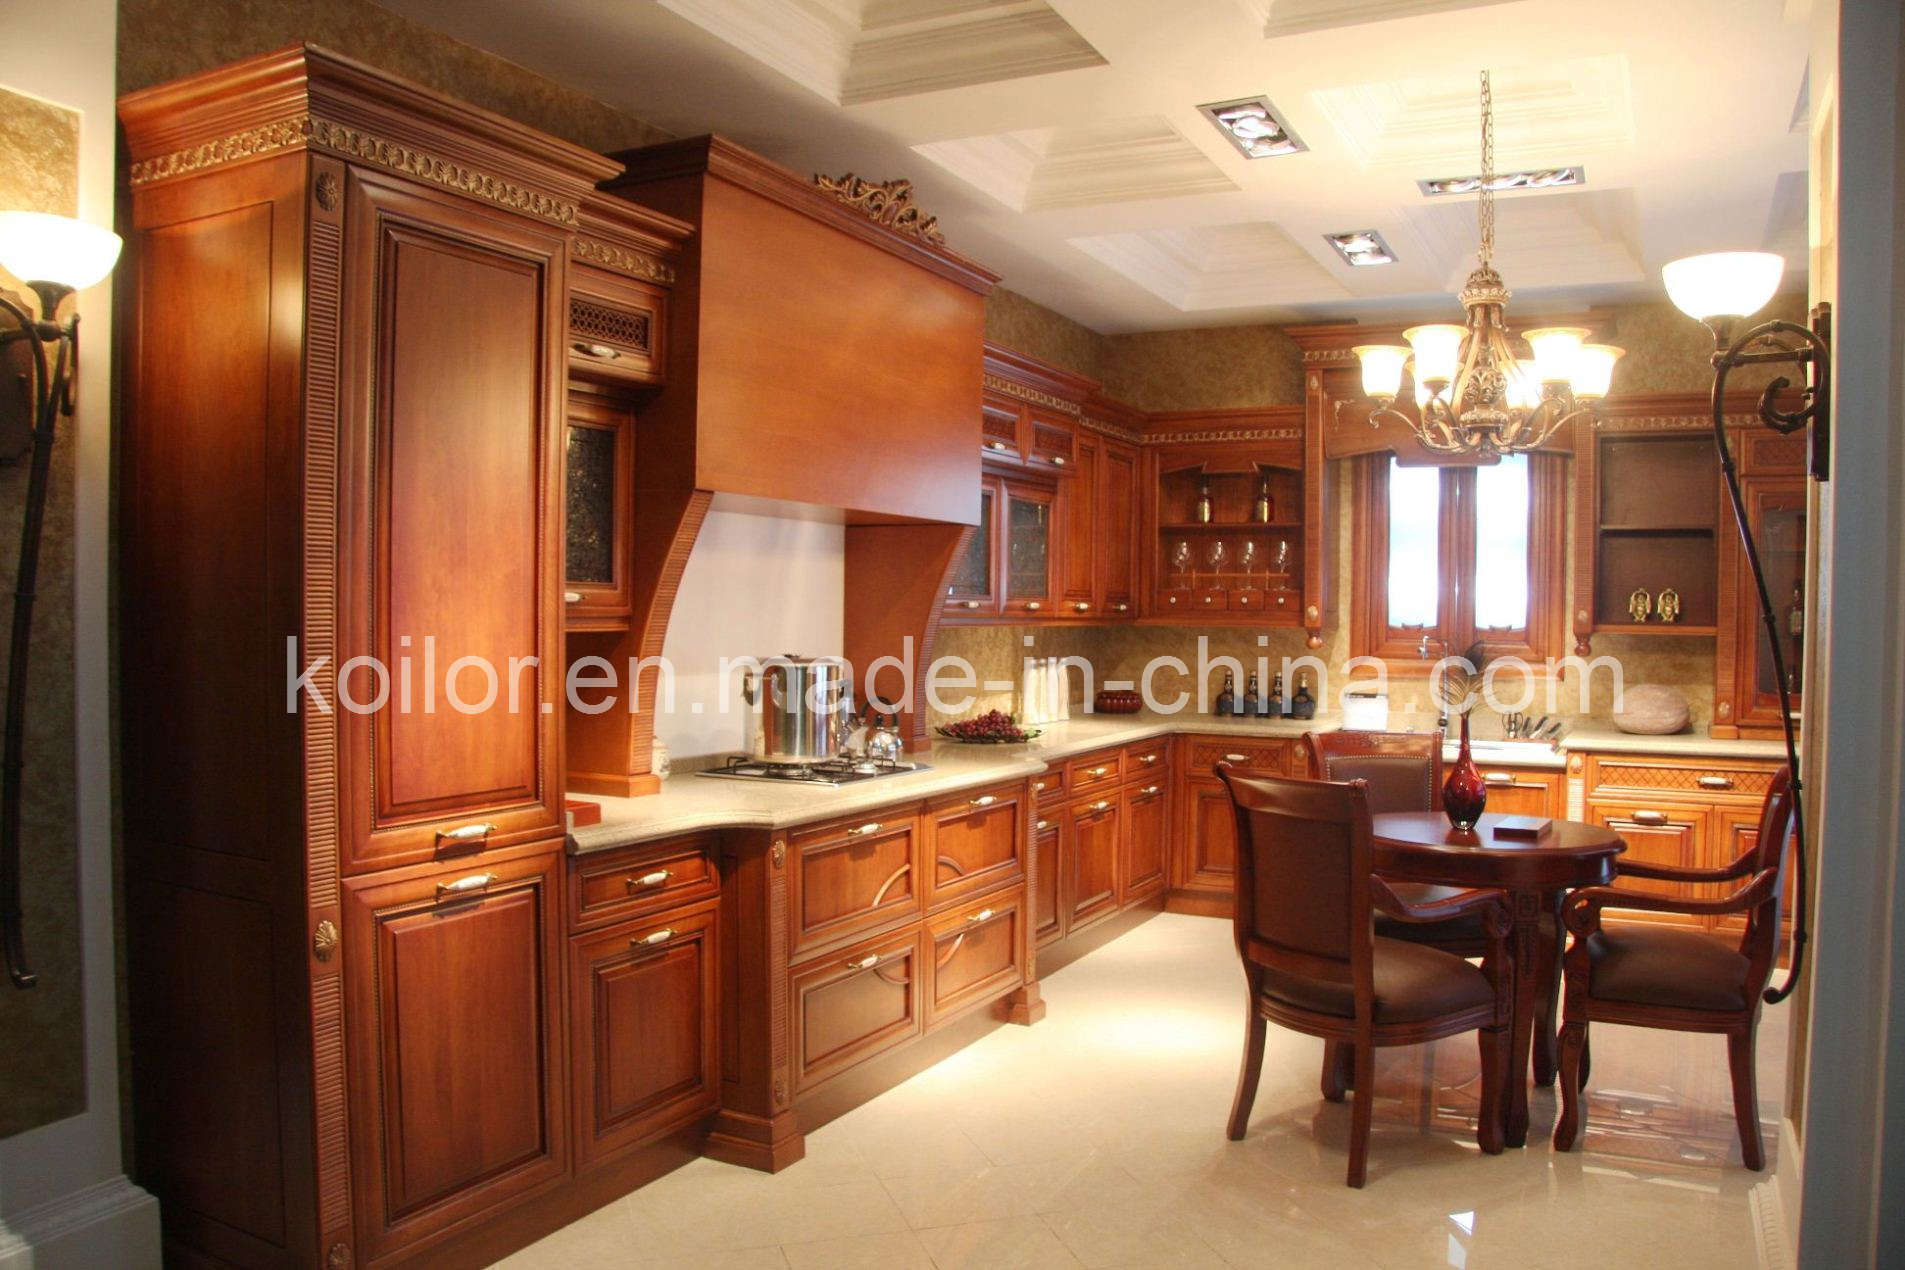 Kitchen Cabinet Solid Wood Kitchen Cabinets Royal China Kitchen